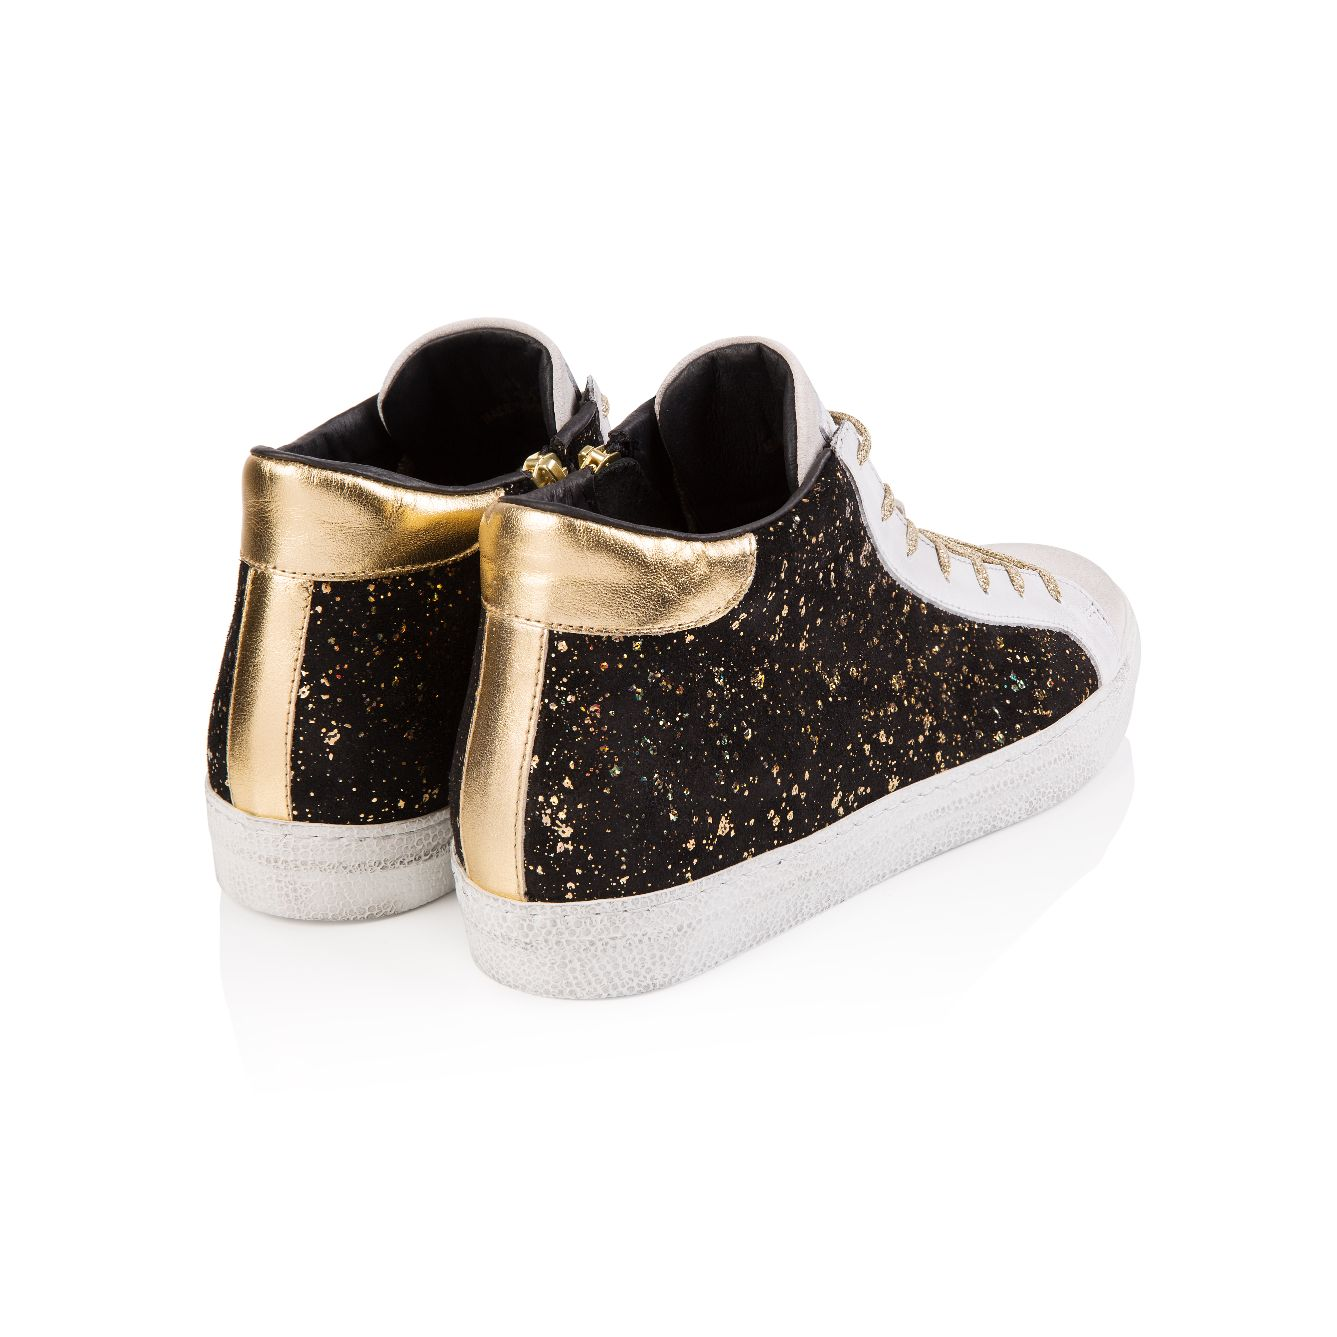 ALTO: BLACK AND GOLD SUEDE HIGH TOP TRAINER